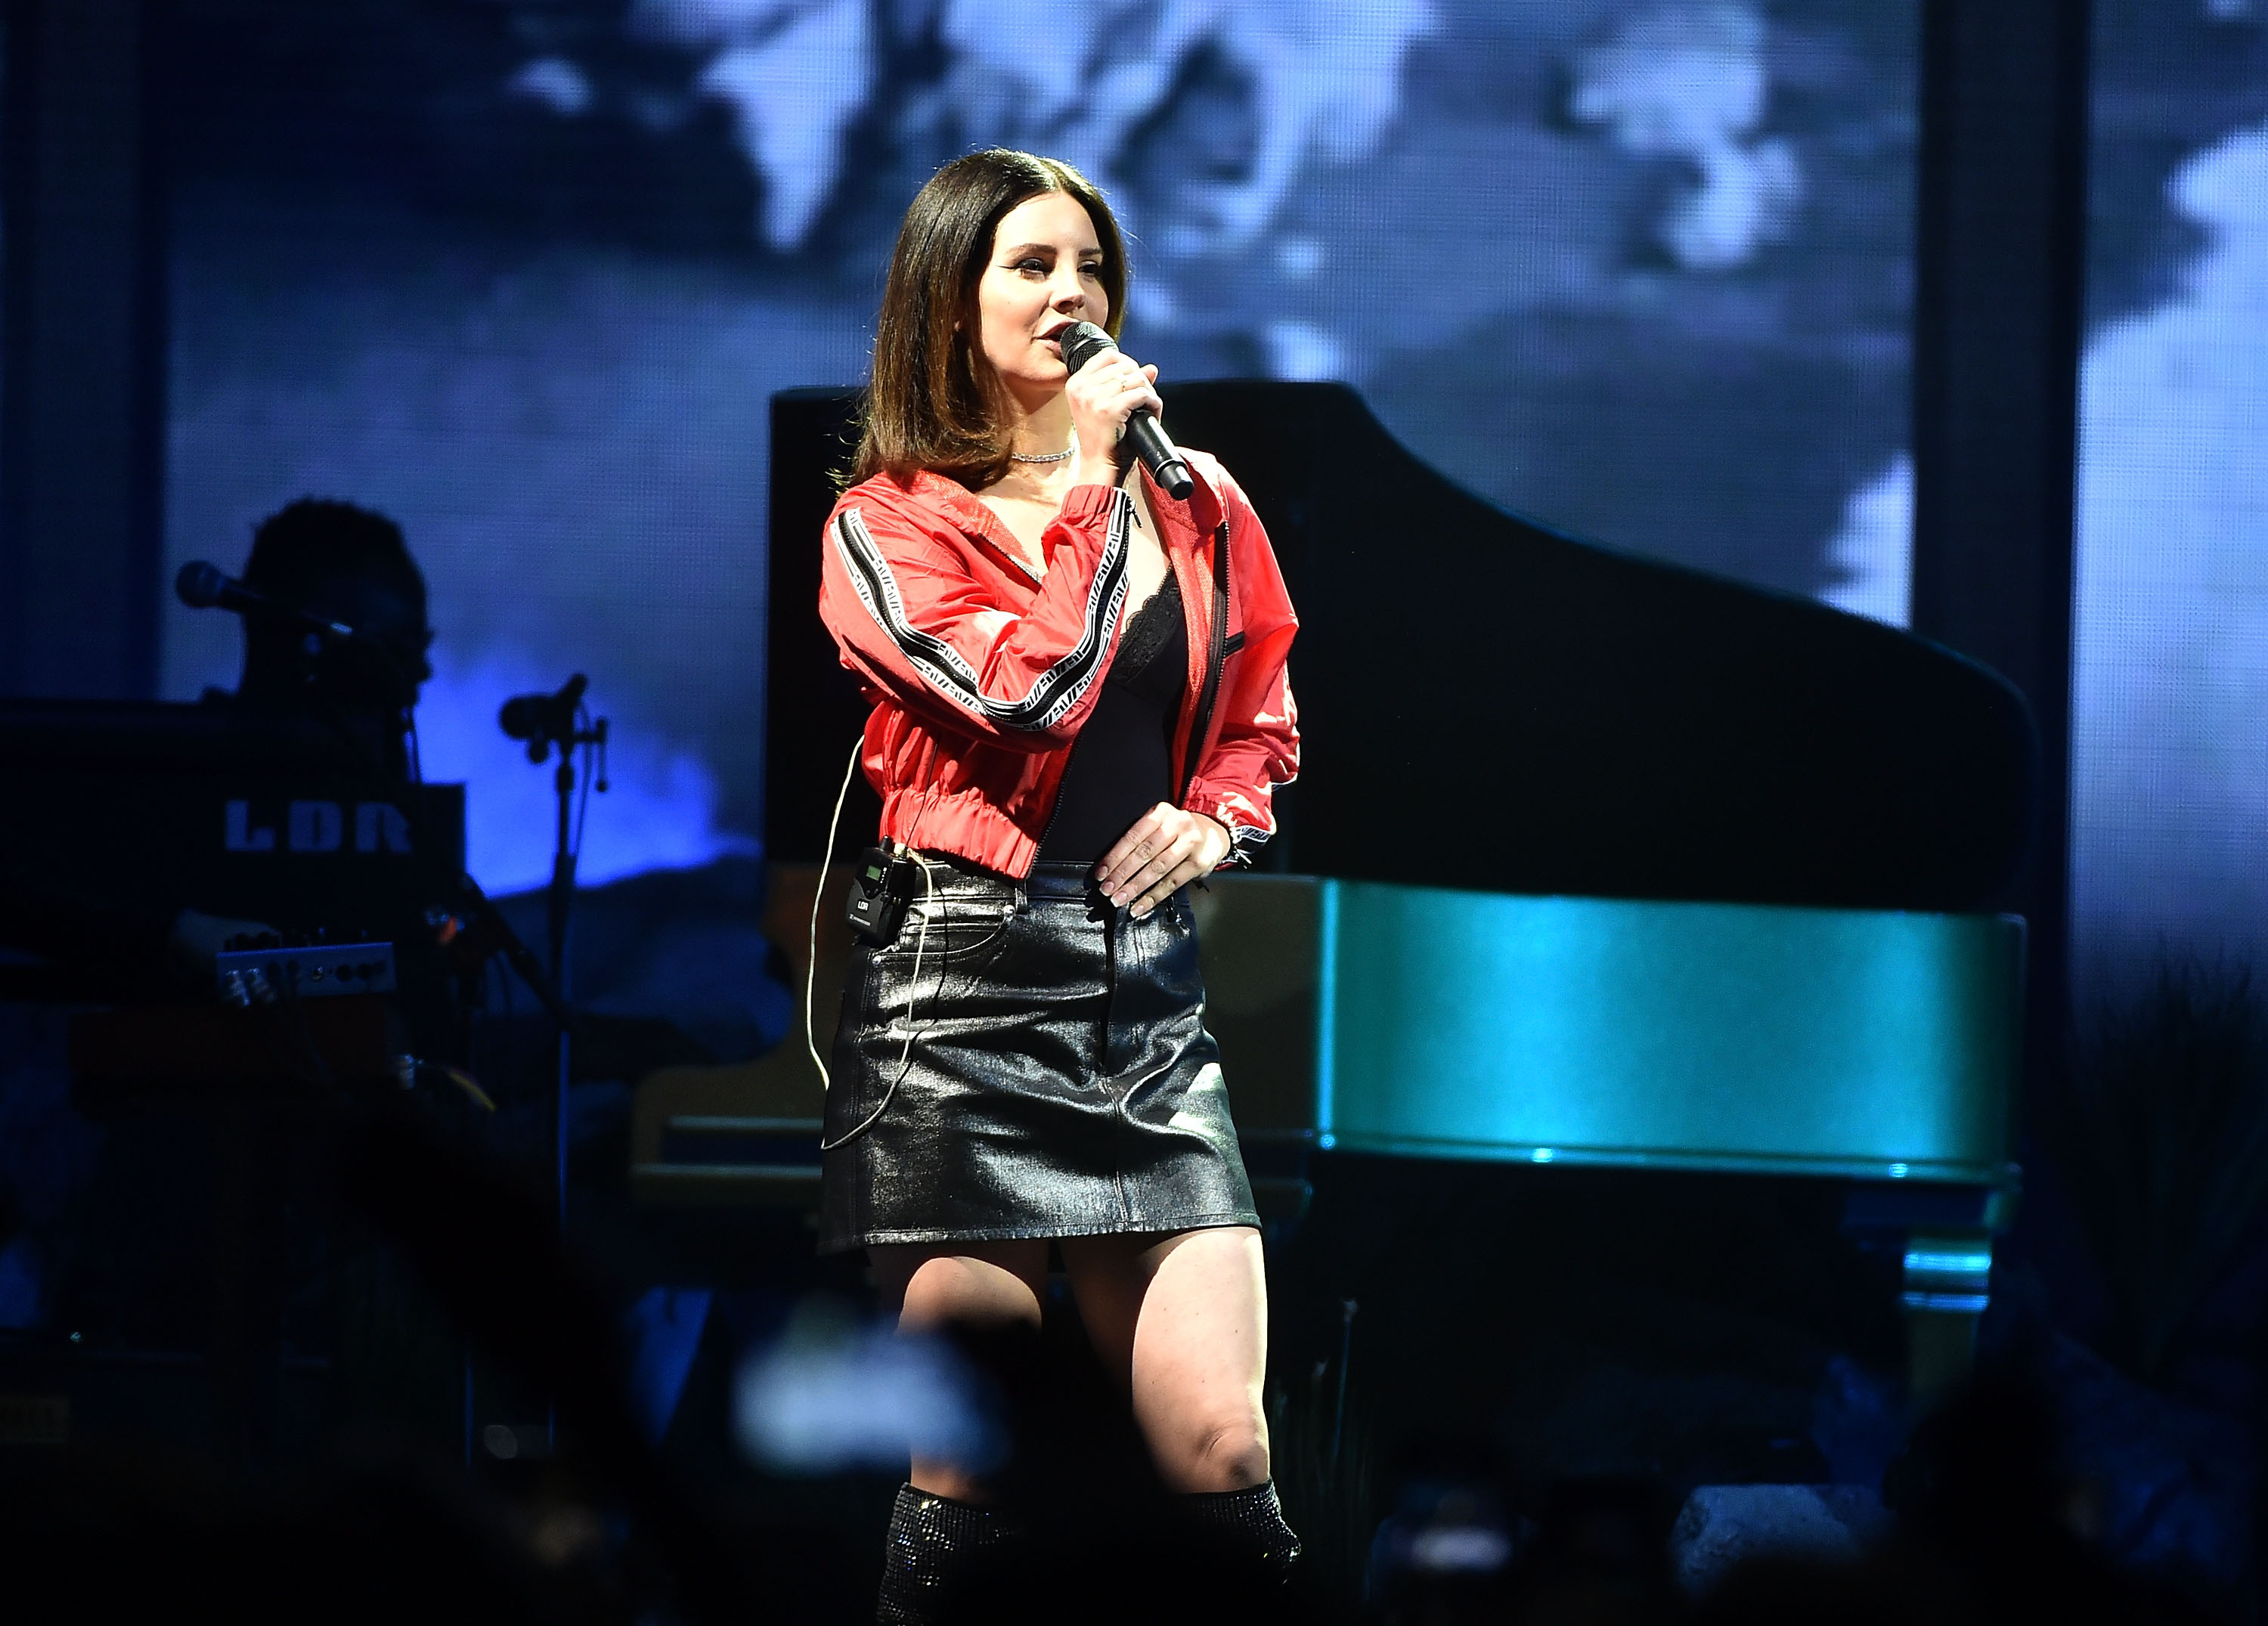 NEWARK, NJ - JANUARY 19:  Lana Del Rey In Concert at Prudential Center on January 19, 2018 in Newark, New Jersey.  (Photo by Theo Wargo/Getty Images)